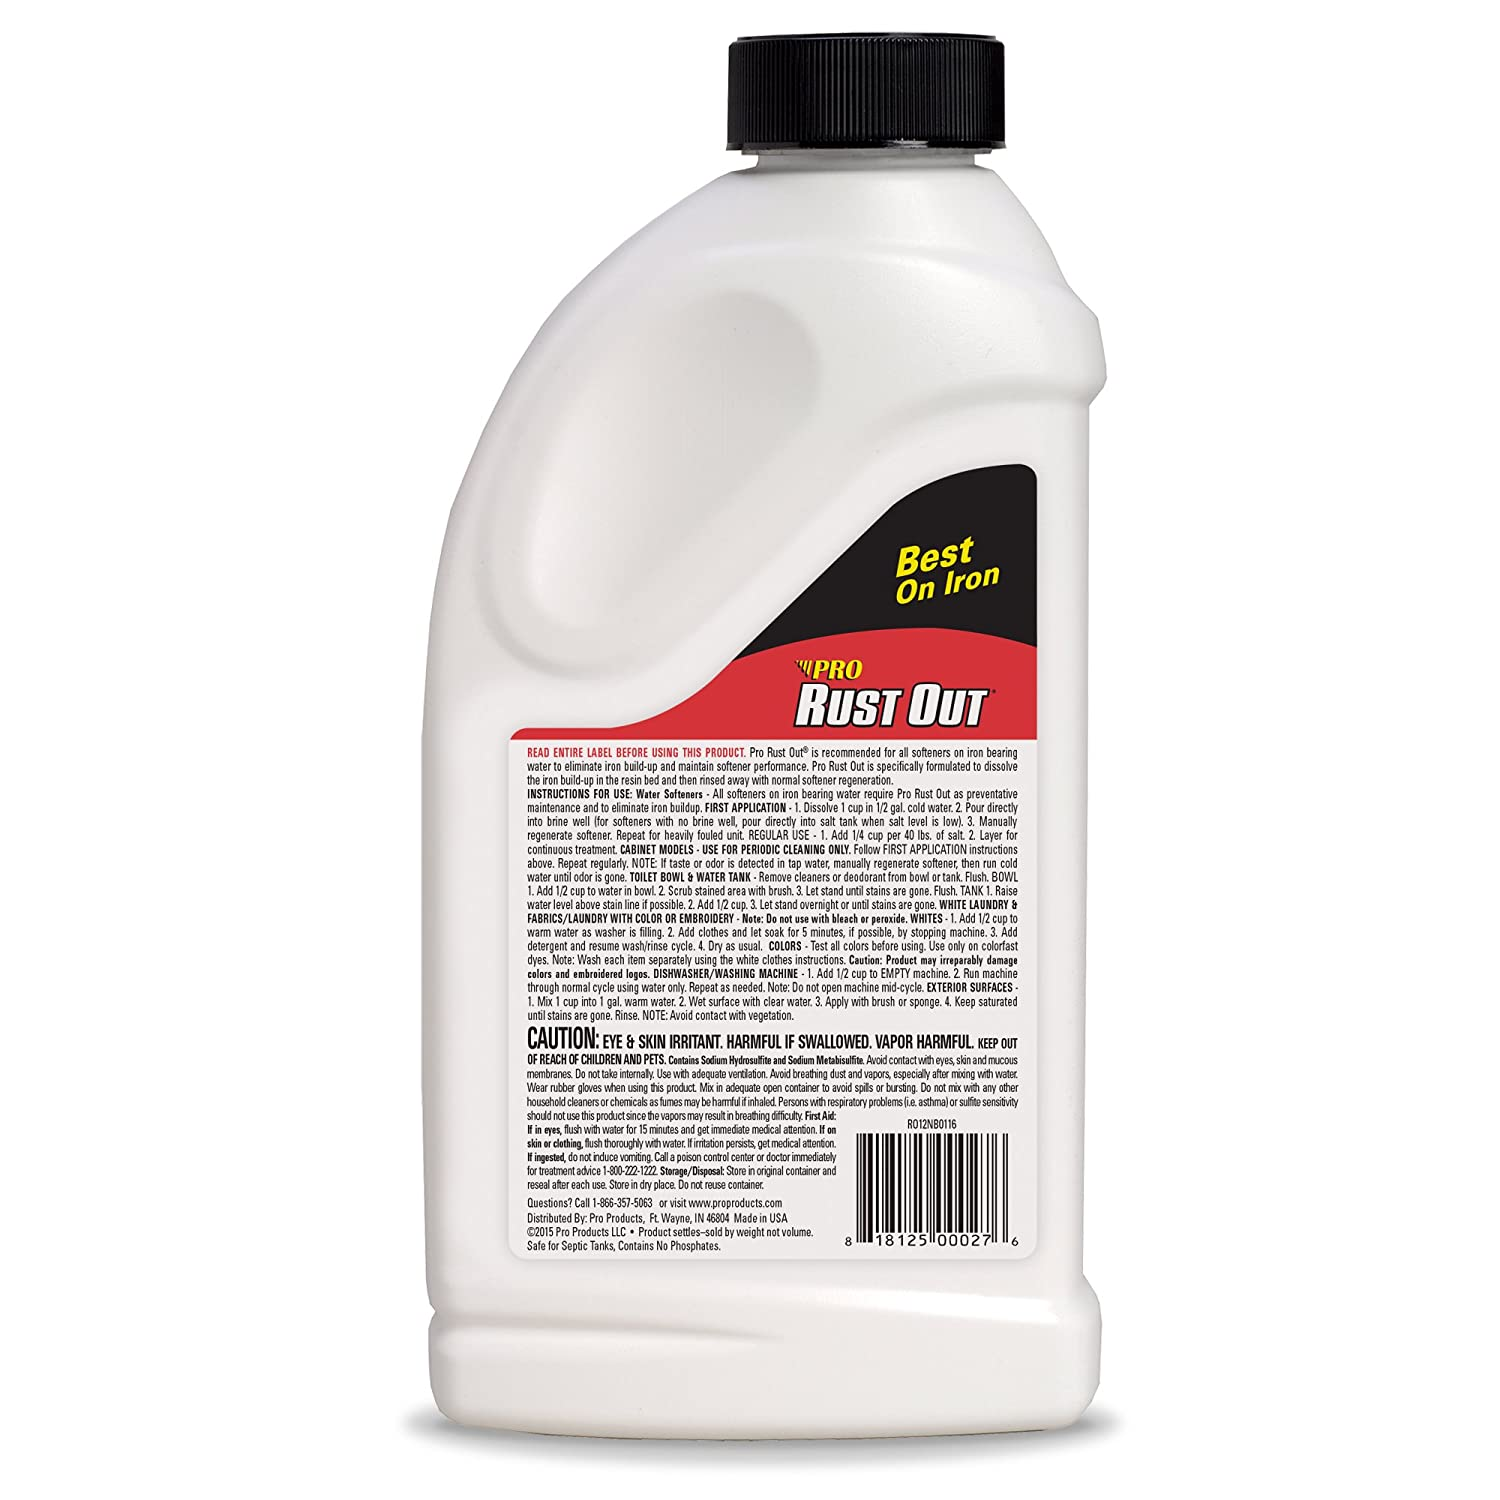 Amazon.com: Pro Products RO12N Rust Out Water Softener Cleaner And ...